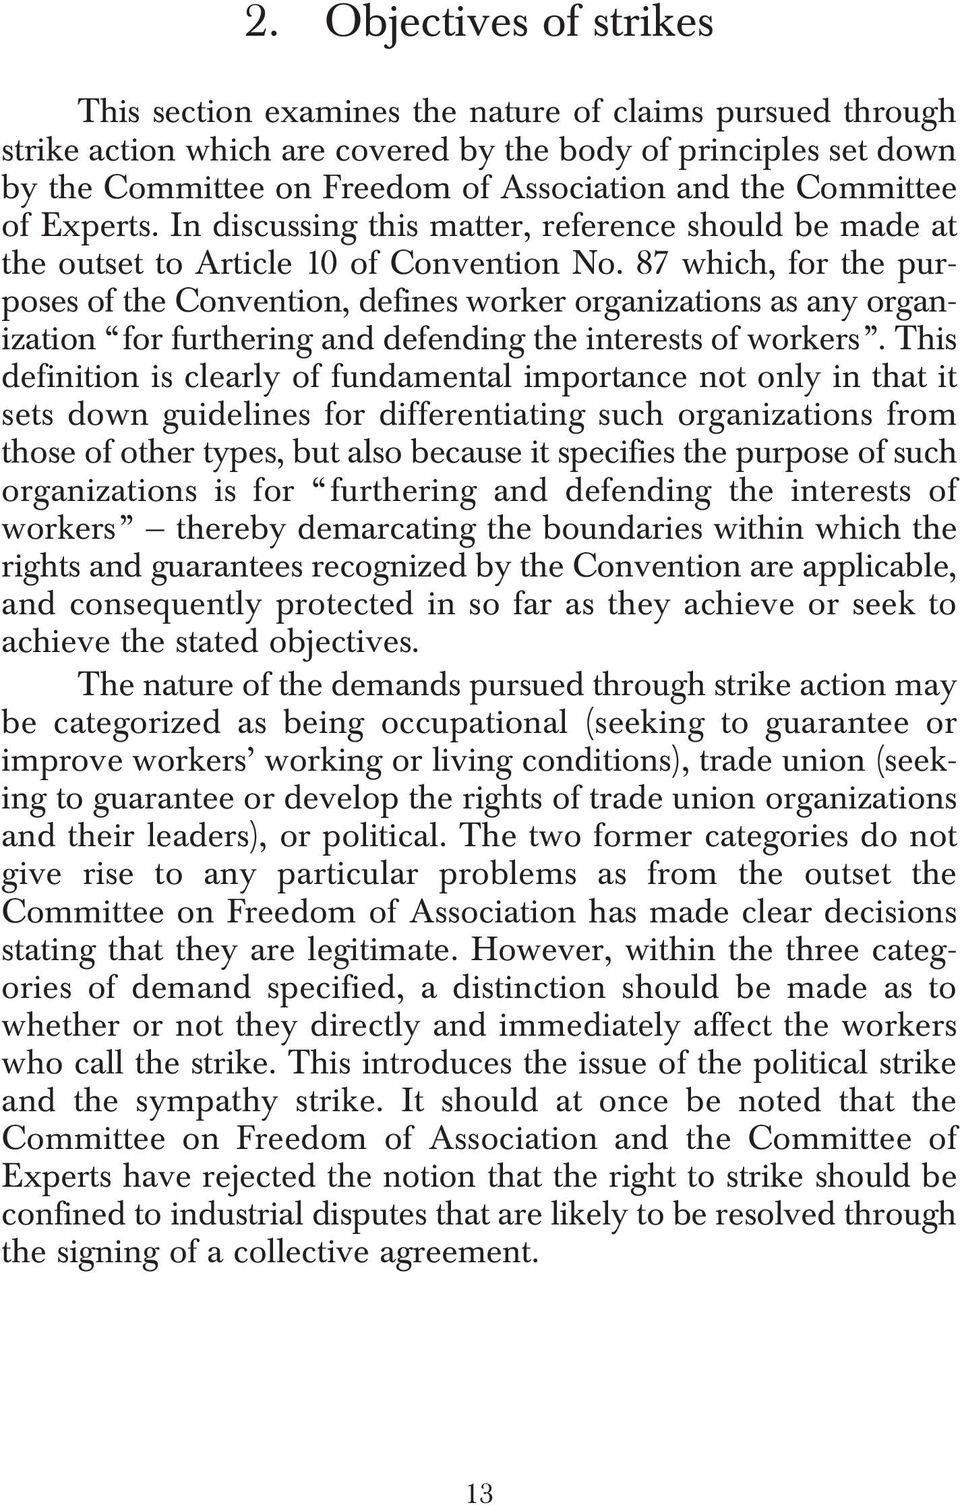 87 which, for the purposes of the Convention, defines worker organizations as any organization for furthering and defending the interests of workers.